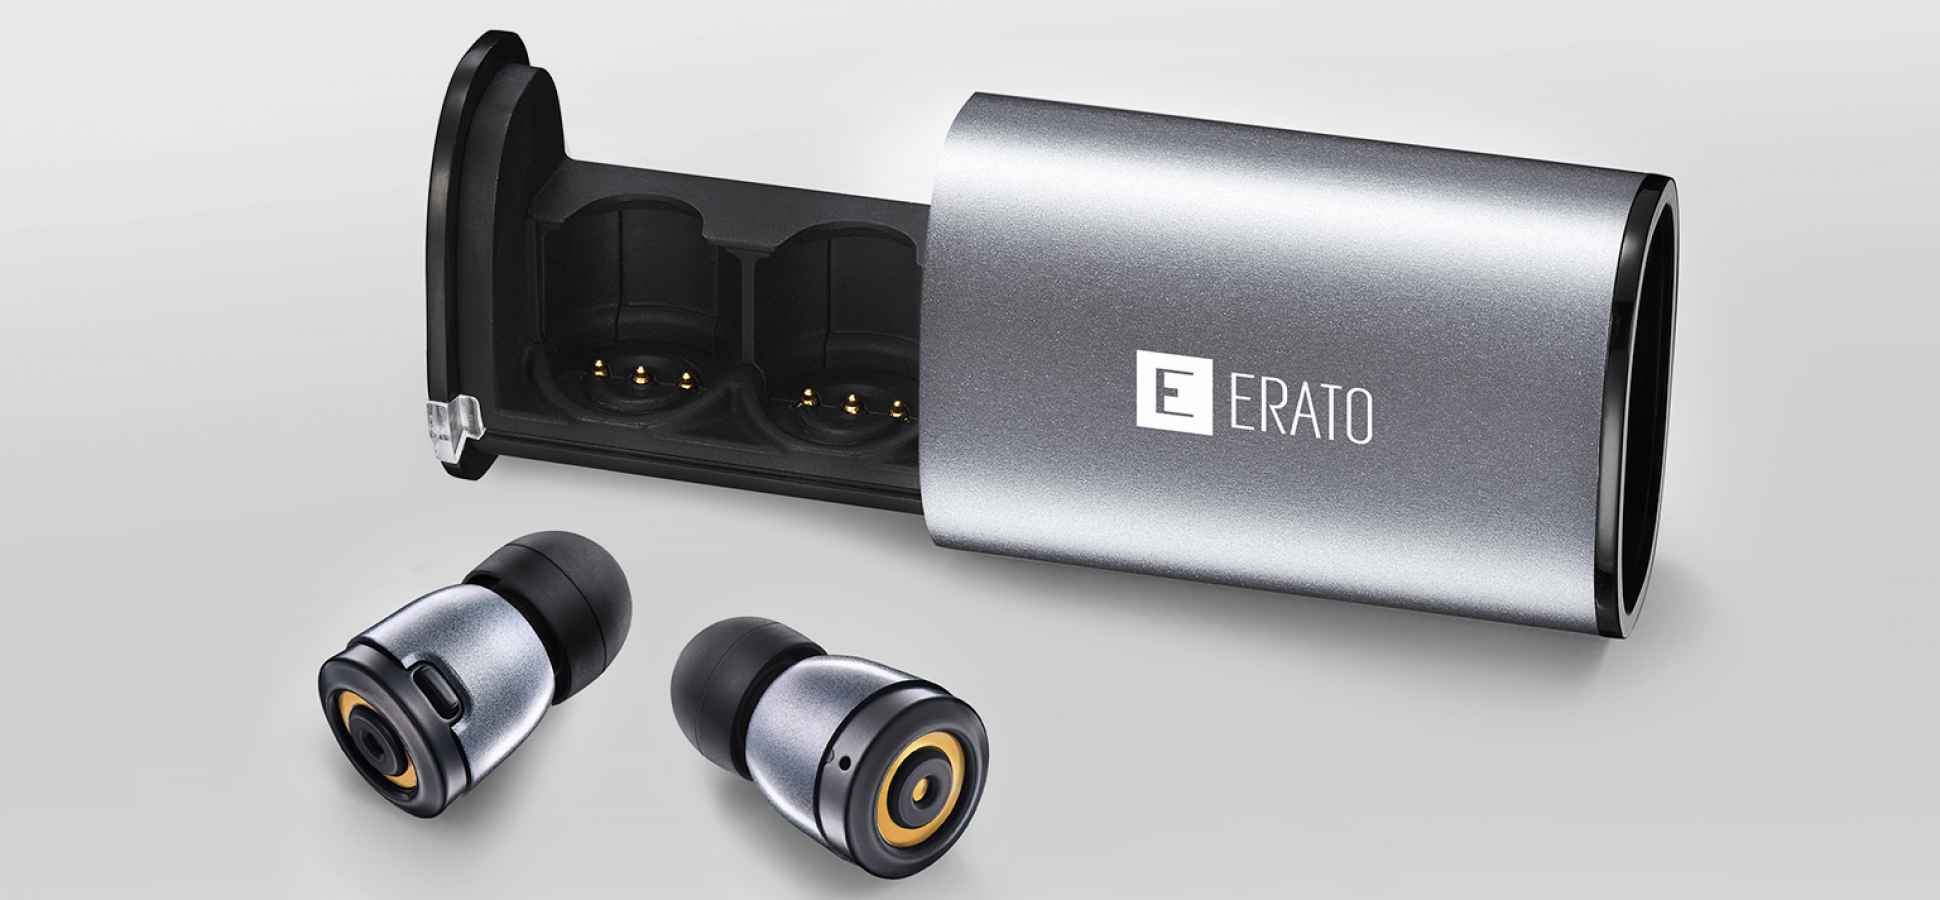 5 Design Lessons From the Last Earbuds You May Want to Buy